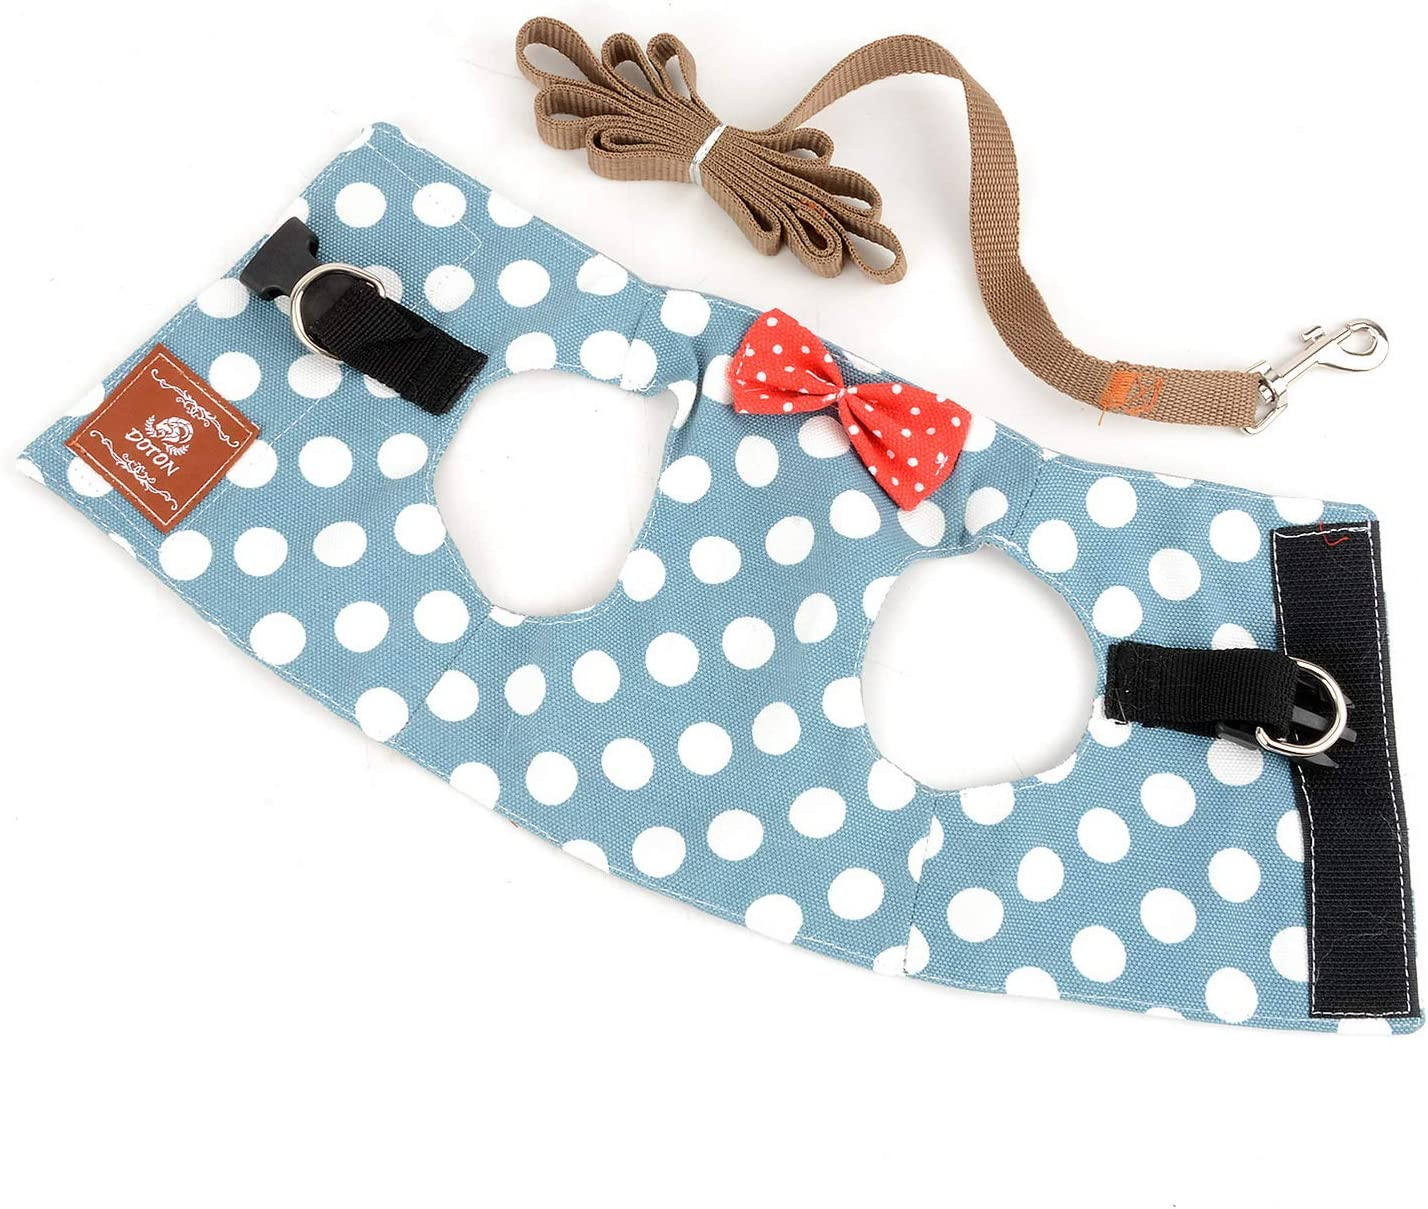 SELMAI Escape Proof Cat Harness with Leash for Small Dogs Dot Polka Vest Harness for Walking Training Leads No Pull for Puppy Doggies Chihuahua Dachshund Running Sport Outdoor